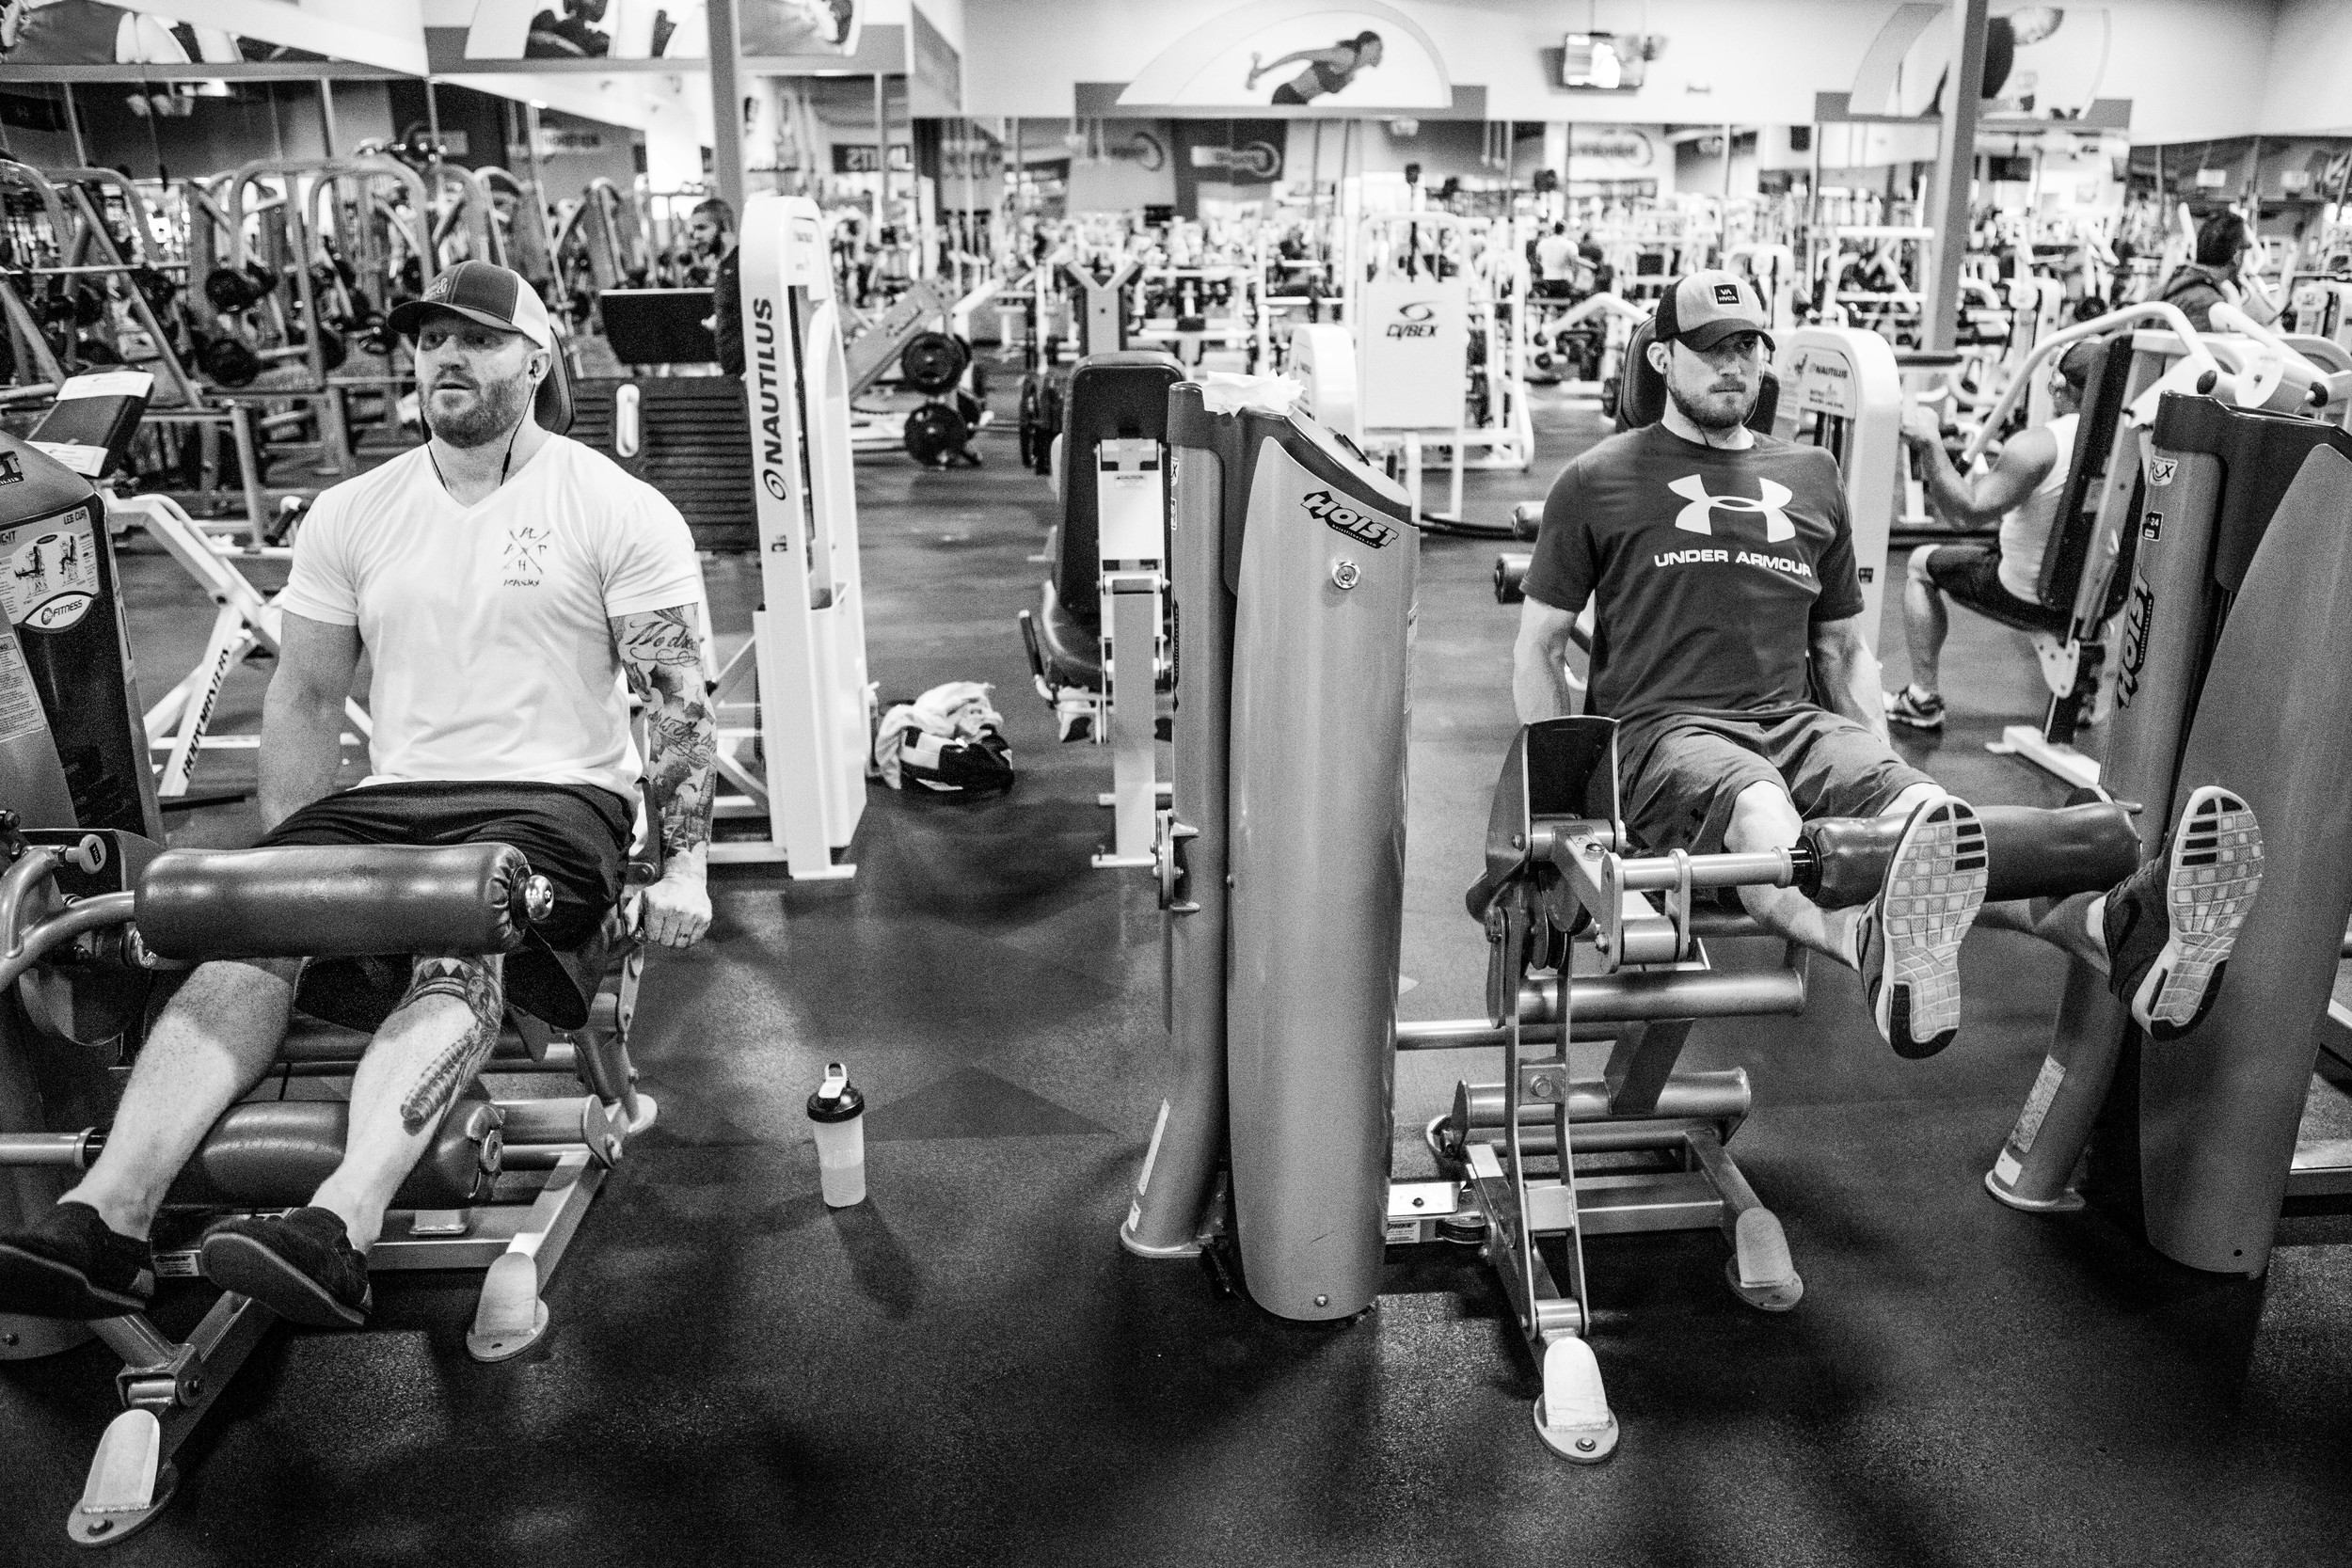 Evan's workouts and time as an athlete have been integral to his successes post-injury.